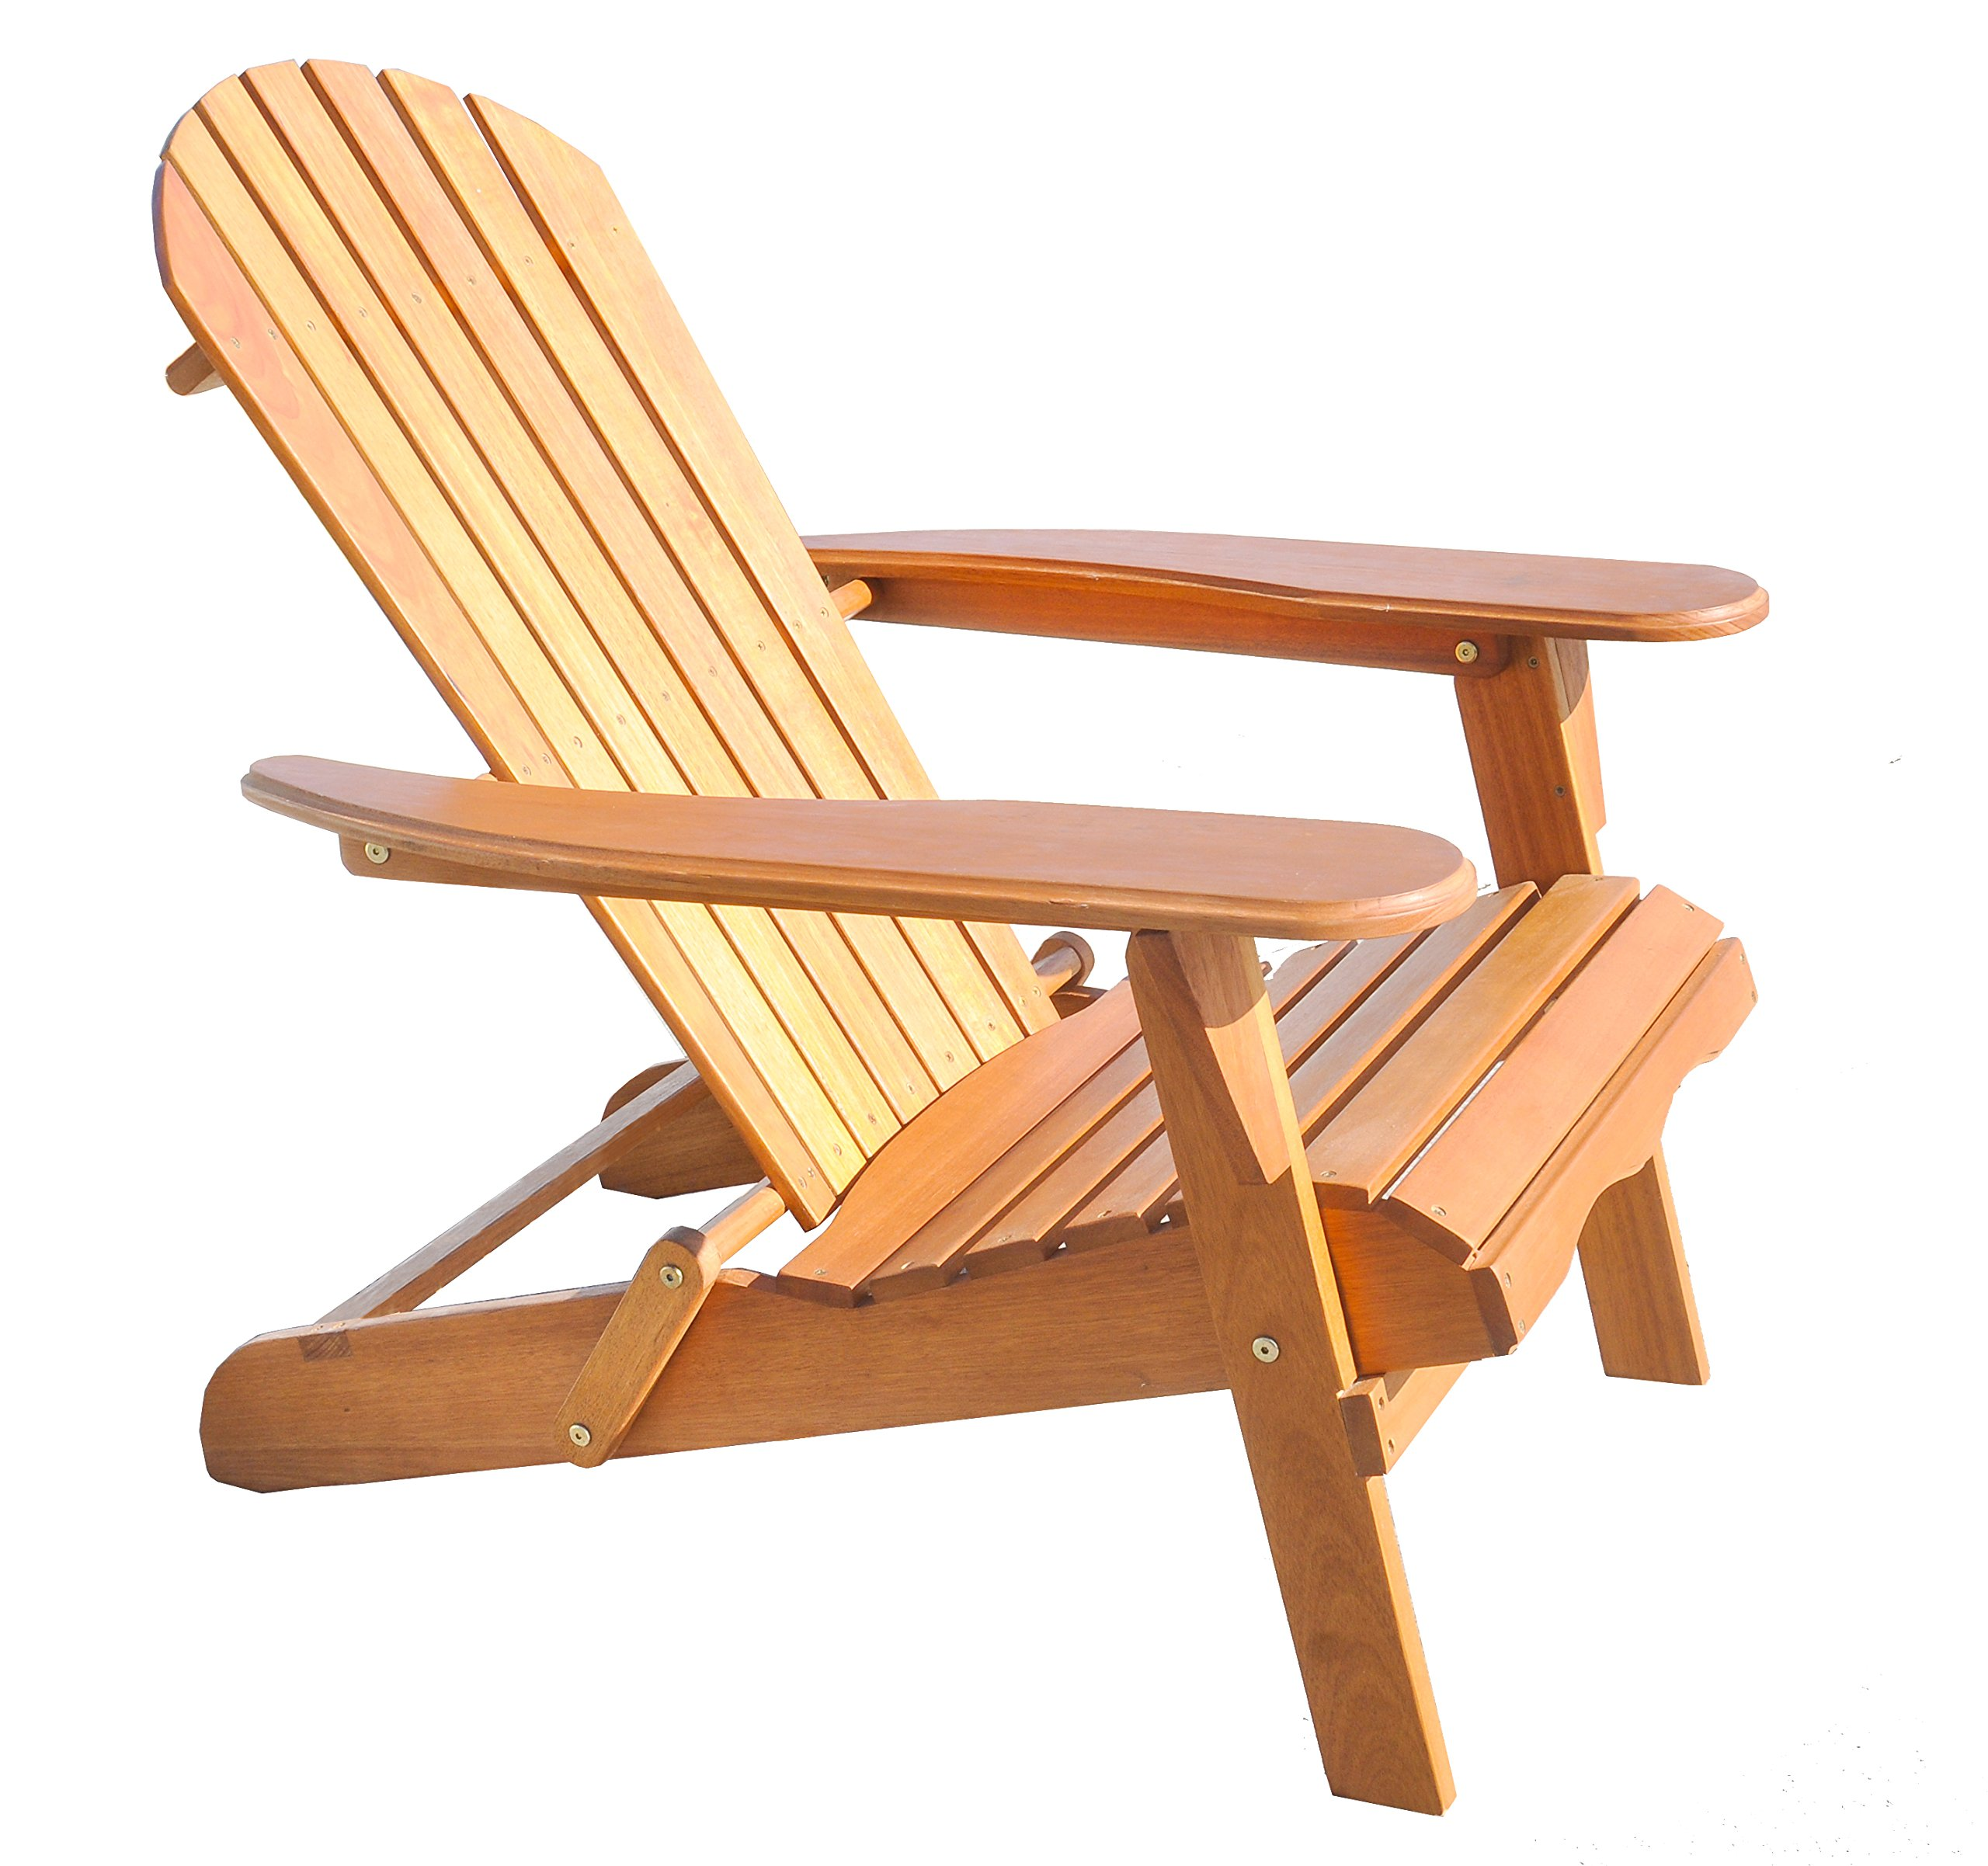 "Amayo Home Solid Eucalyptus Wood Foldable Adirondack Chair in Natural Color. Ergonomic Design & Can be Folded for Storage or Bringing to picnics - 100% EUCALYPTUS WOOD - won't splinter, warp or rot; FOLDS CONVENIENTLY for storage when not in use or in between seasons; HOLDS up to 350lbs LIGHT-WEIGHT DESIGN make it easy to move from place to place (23lbs); EASY TO ASSEMBLE with final dimensions measuring 35"" tall x 35/55.1"" deep x 31.3"" wide and weighing 23lbs - patio-furniture, patio-chairs, patio - 8190NlXLHBL -"